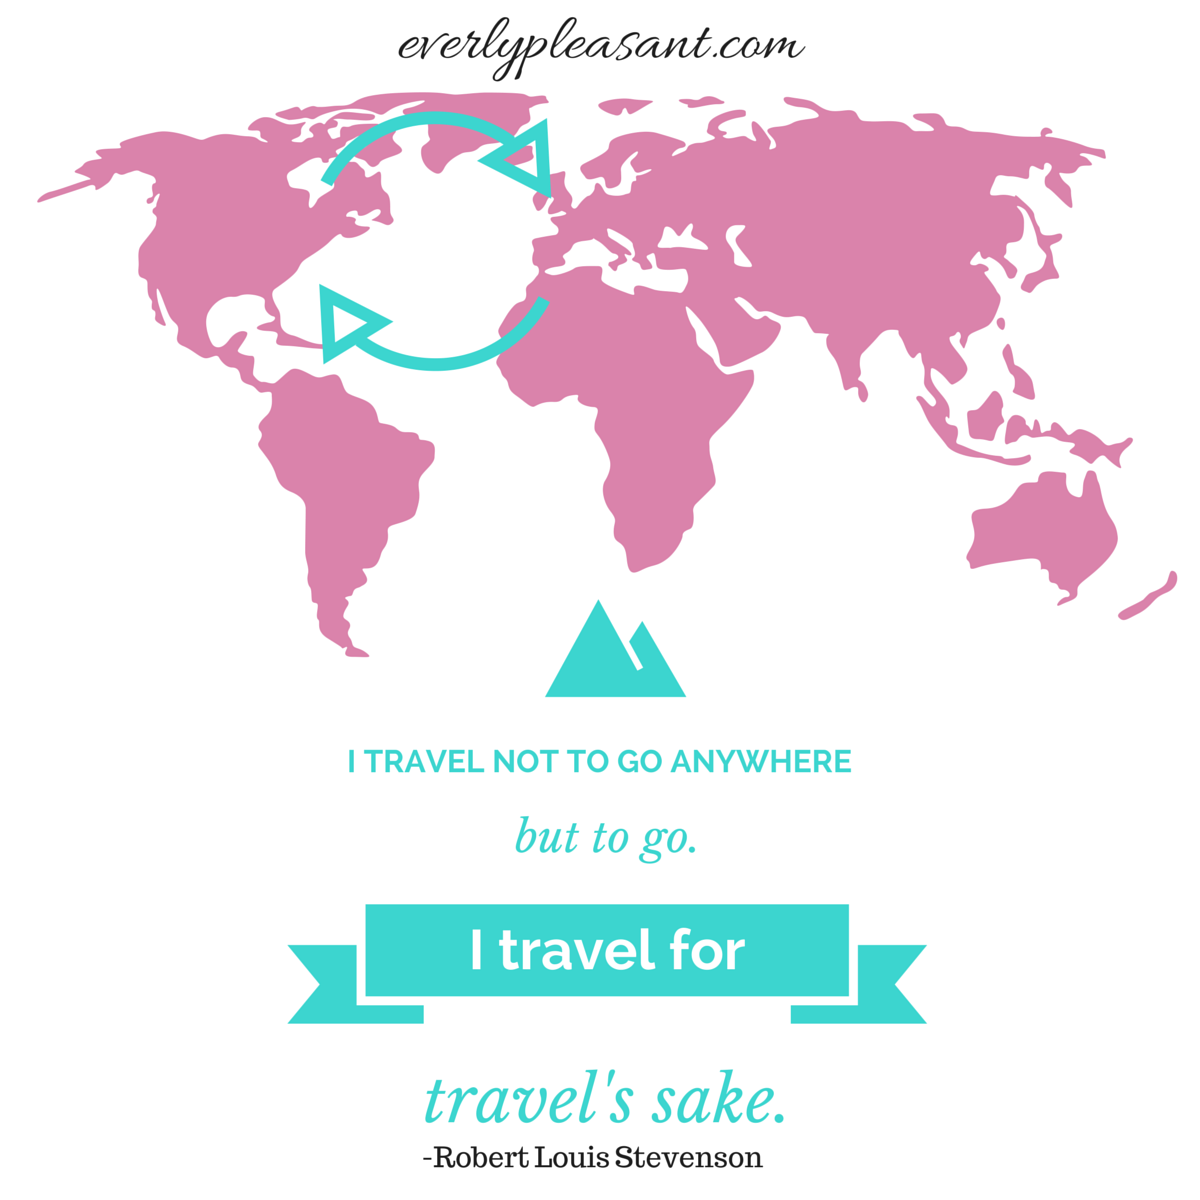 travel for travel's sake